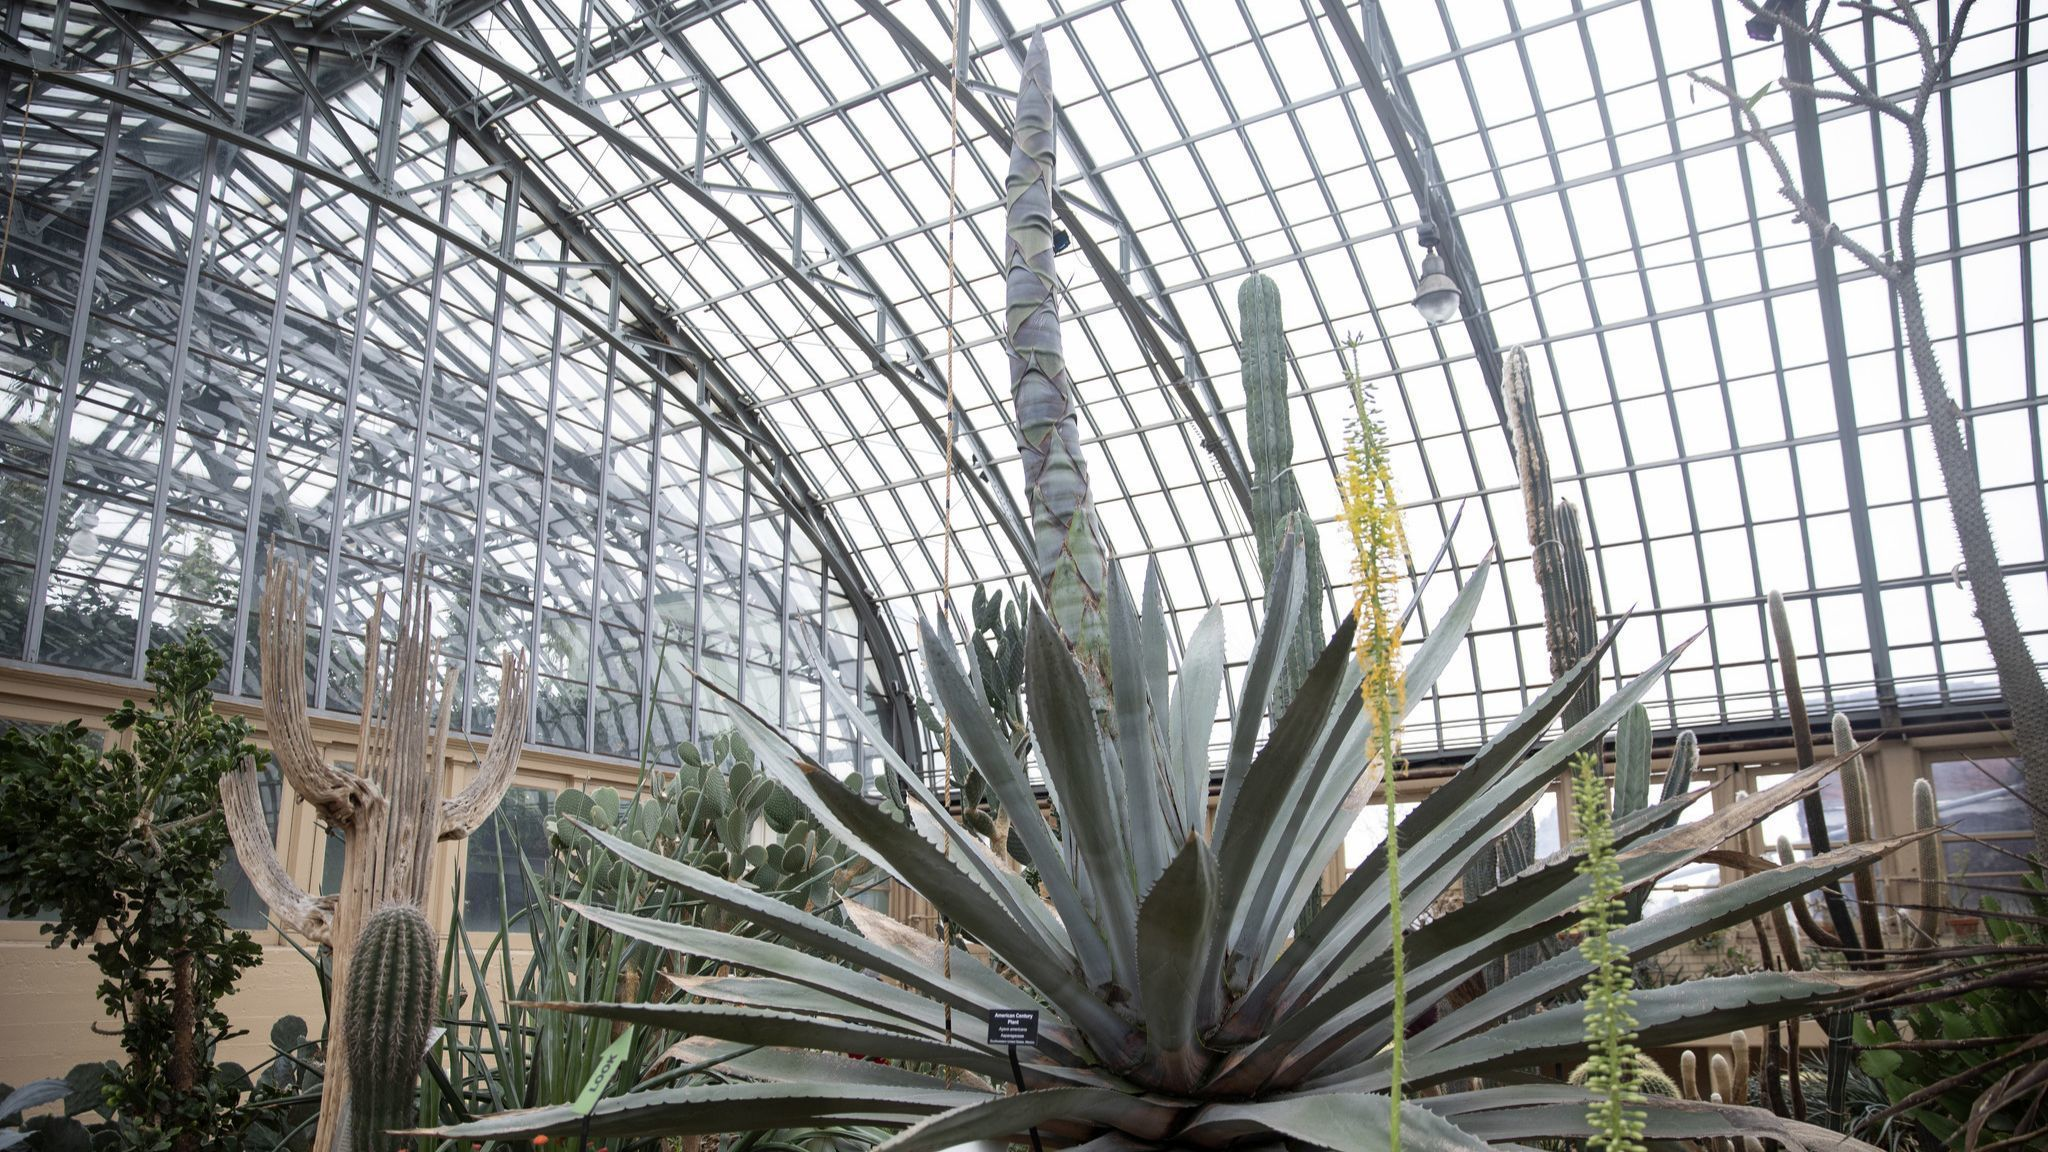 Garfield Park's agave plant is having a growth spurt in the midst of a frigid winter. Here's why.